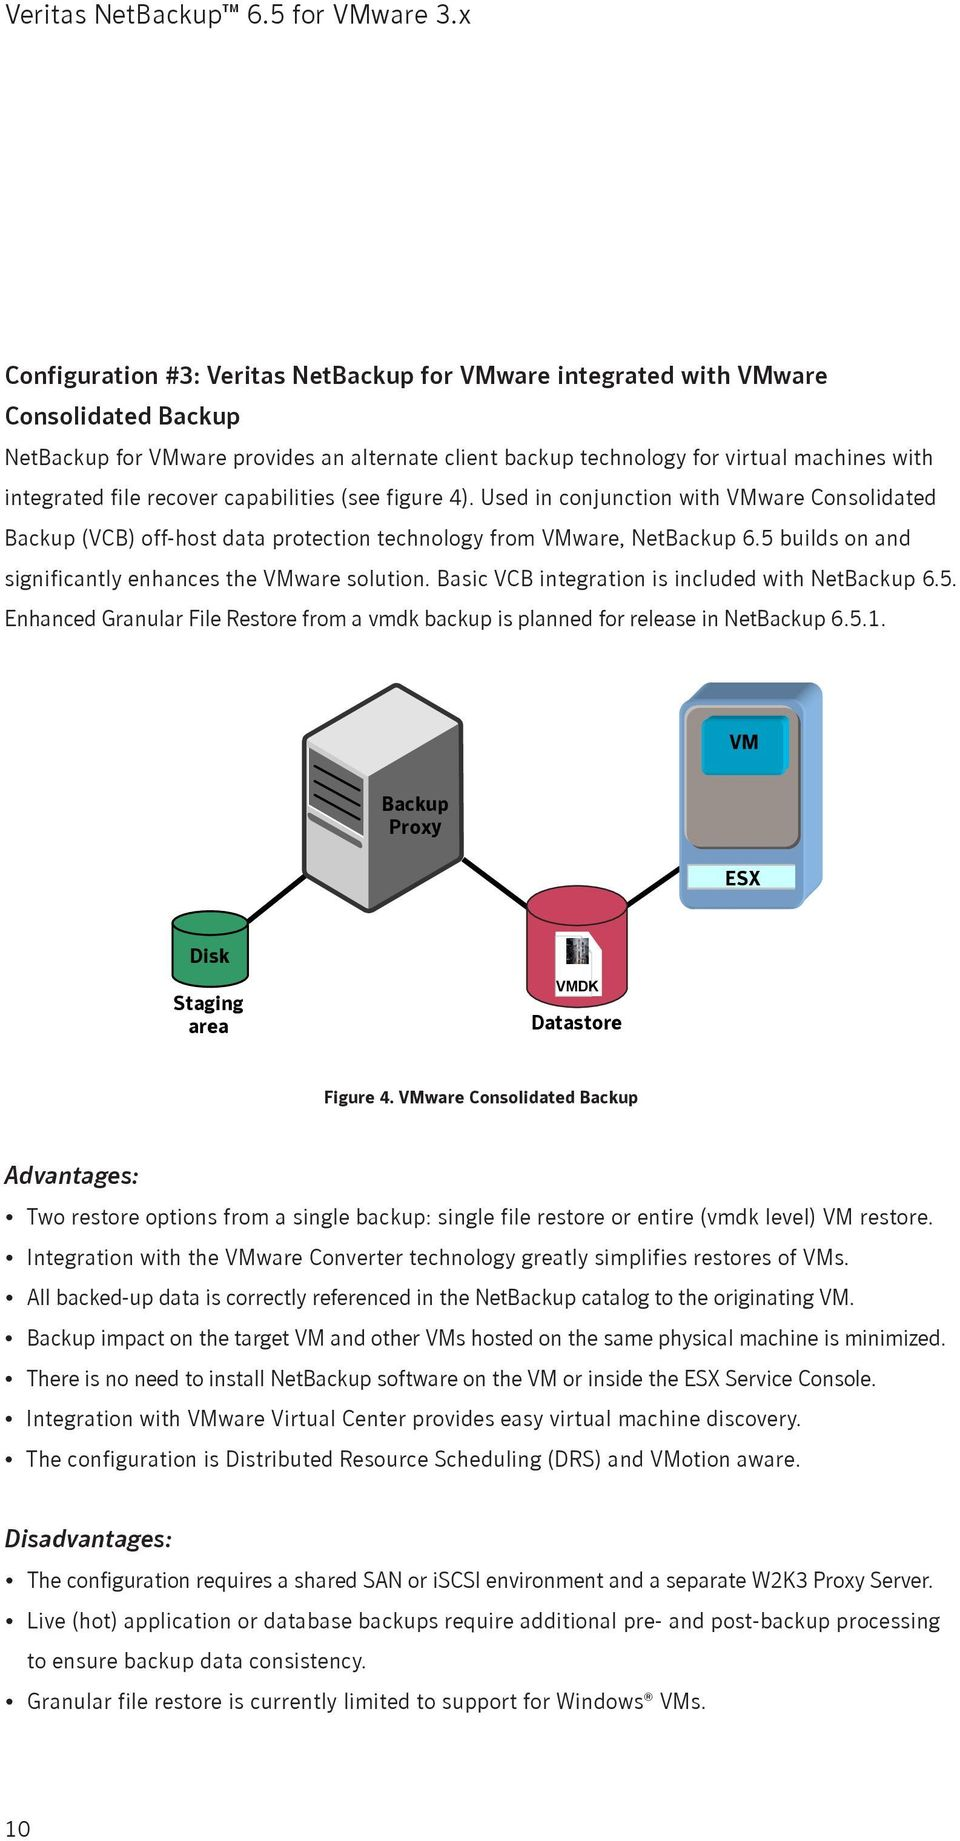 5 builds on and significantly enhances the VMware solution. Basic VCB integration is included with NetBackup 6.5. Enhanced Granular File Restore from a vmdk backup is planned for release in NetBackup 6.